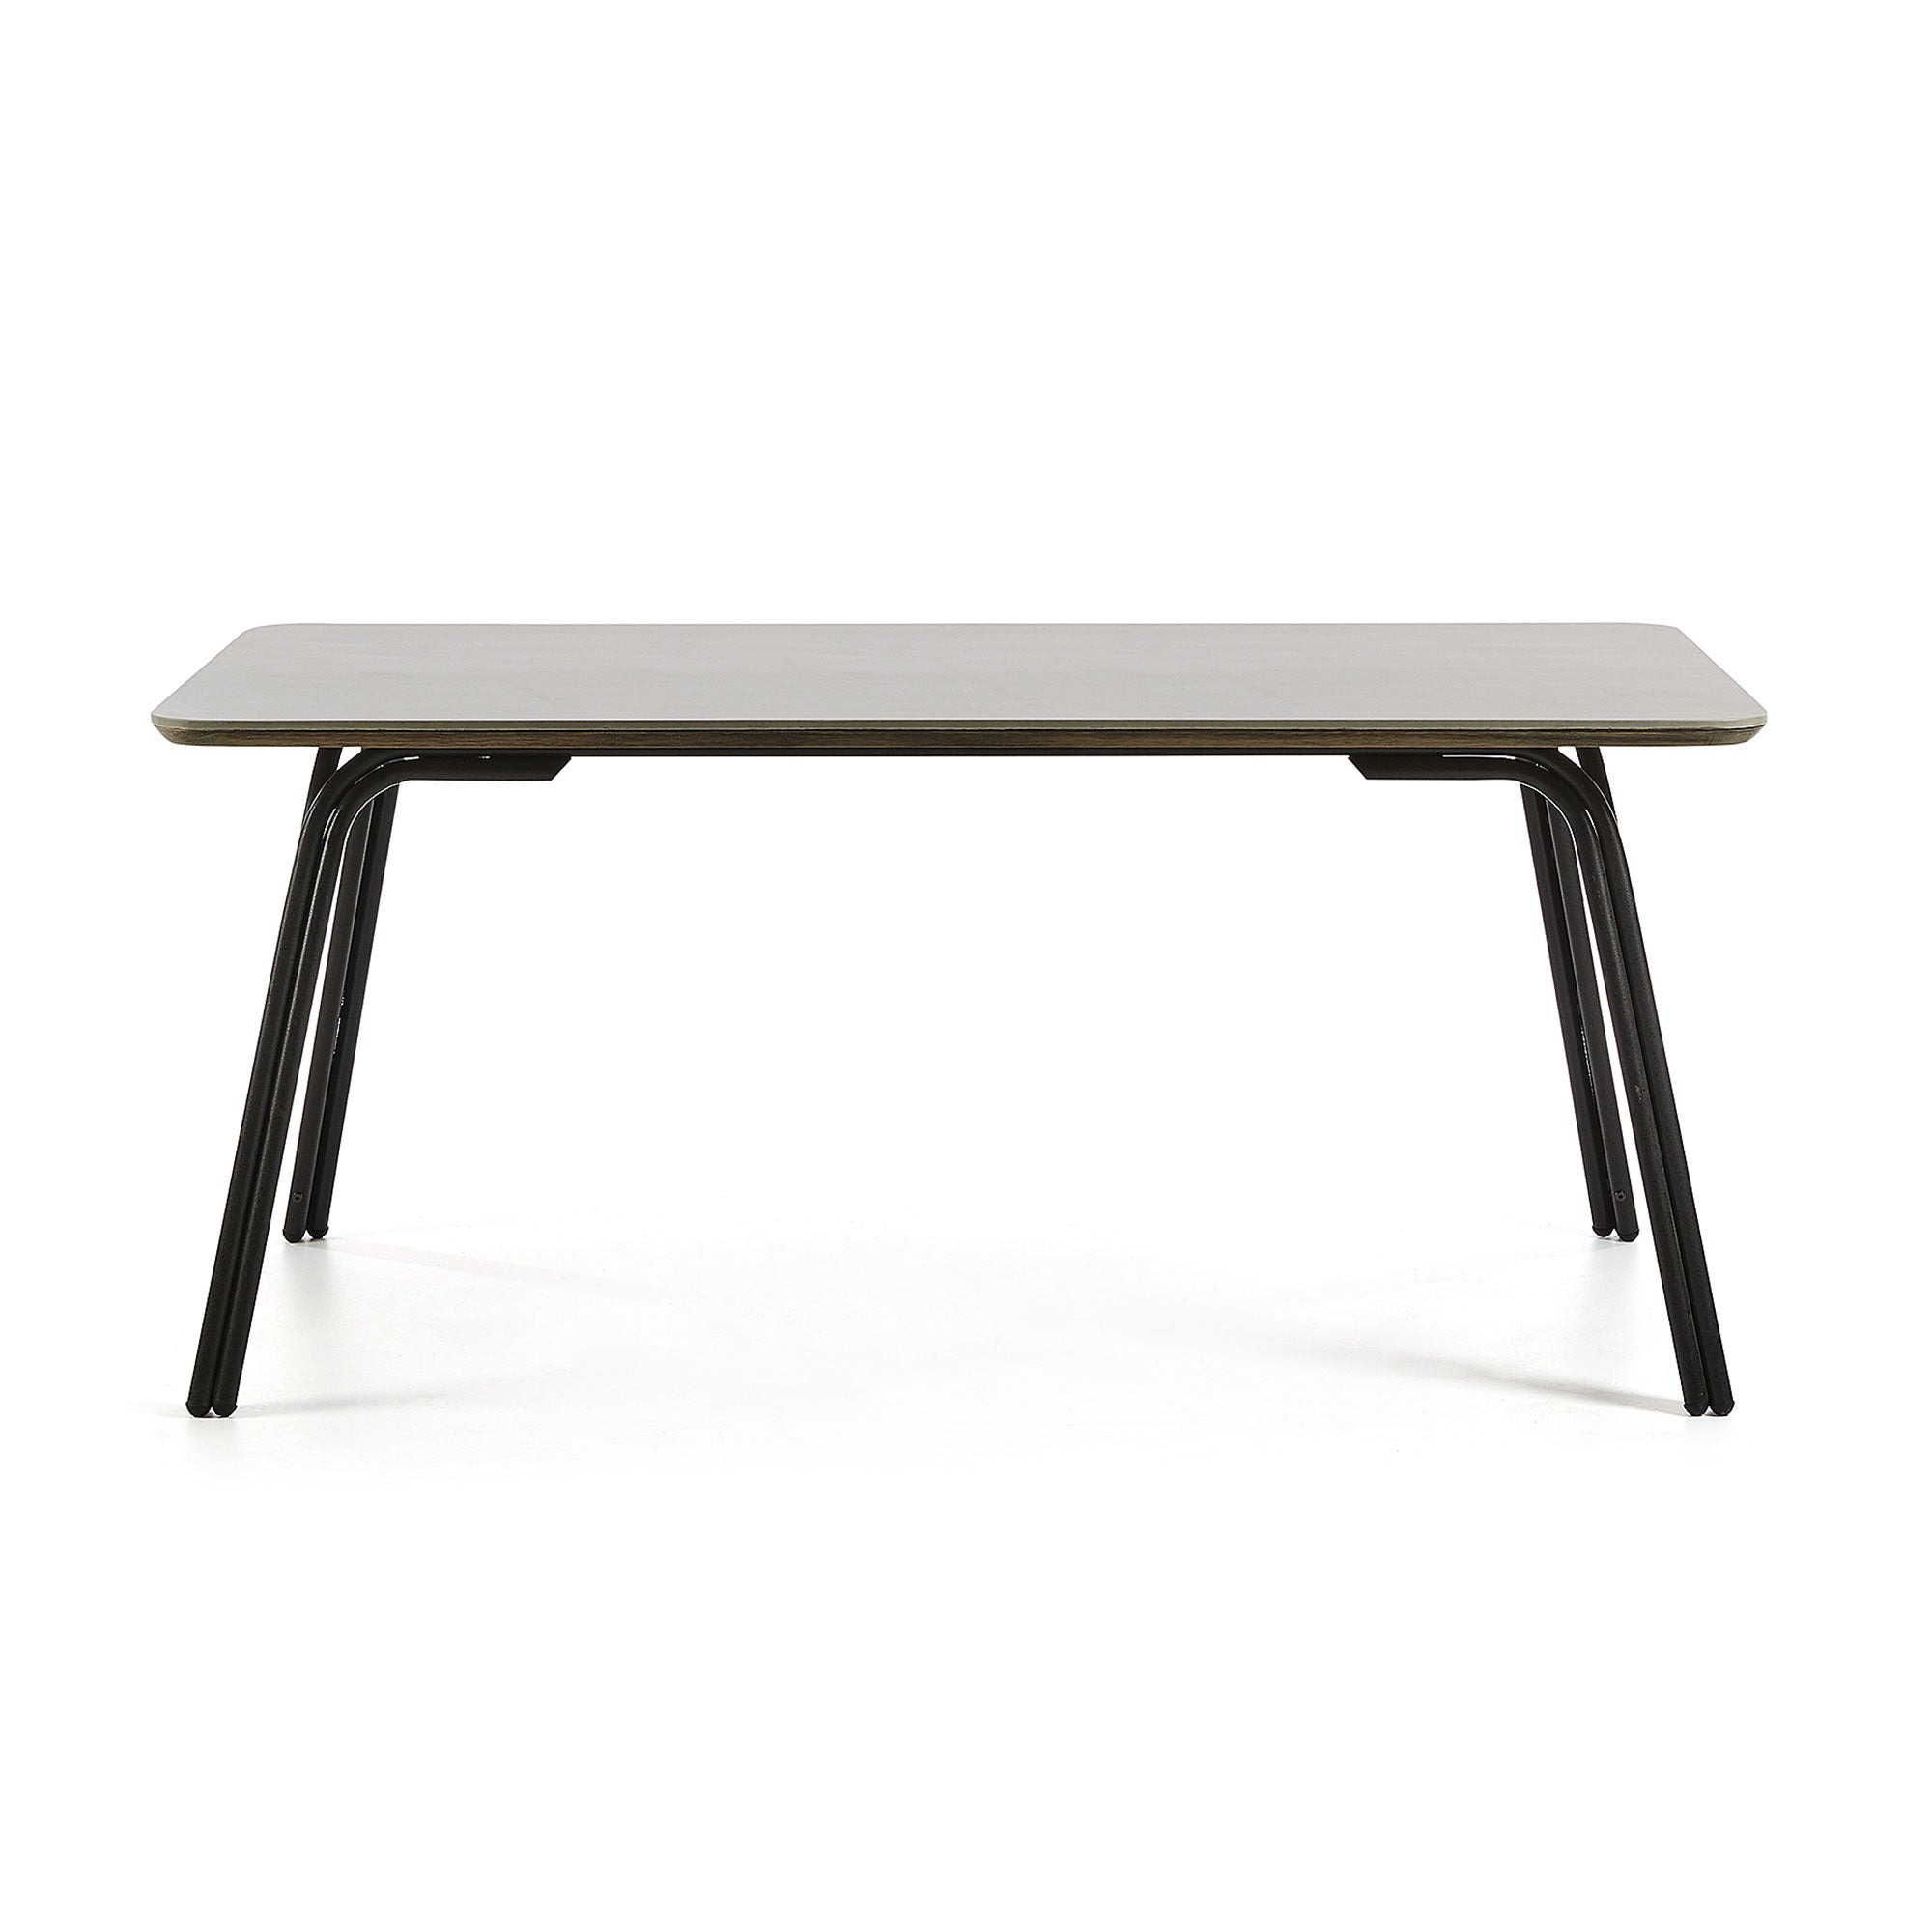 Bernon Patio Dining Table